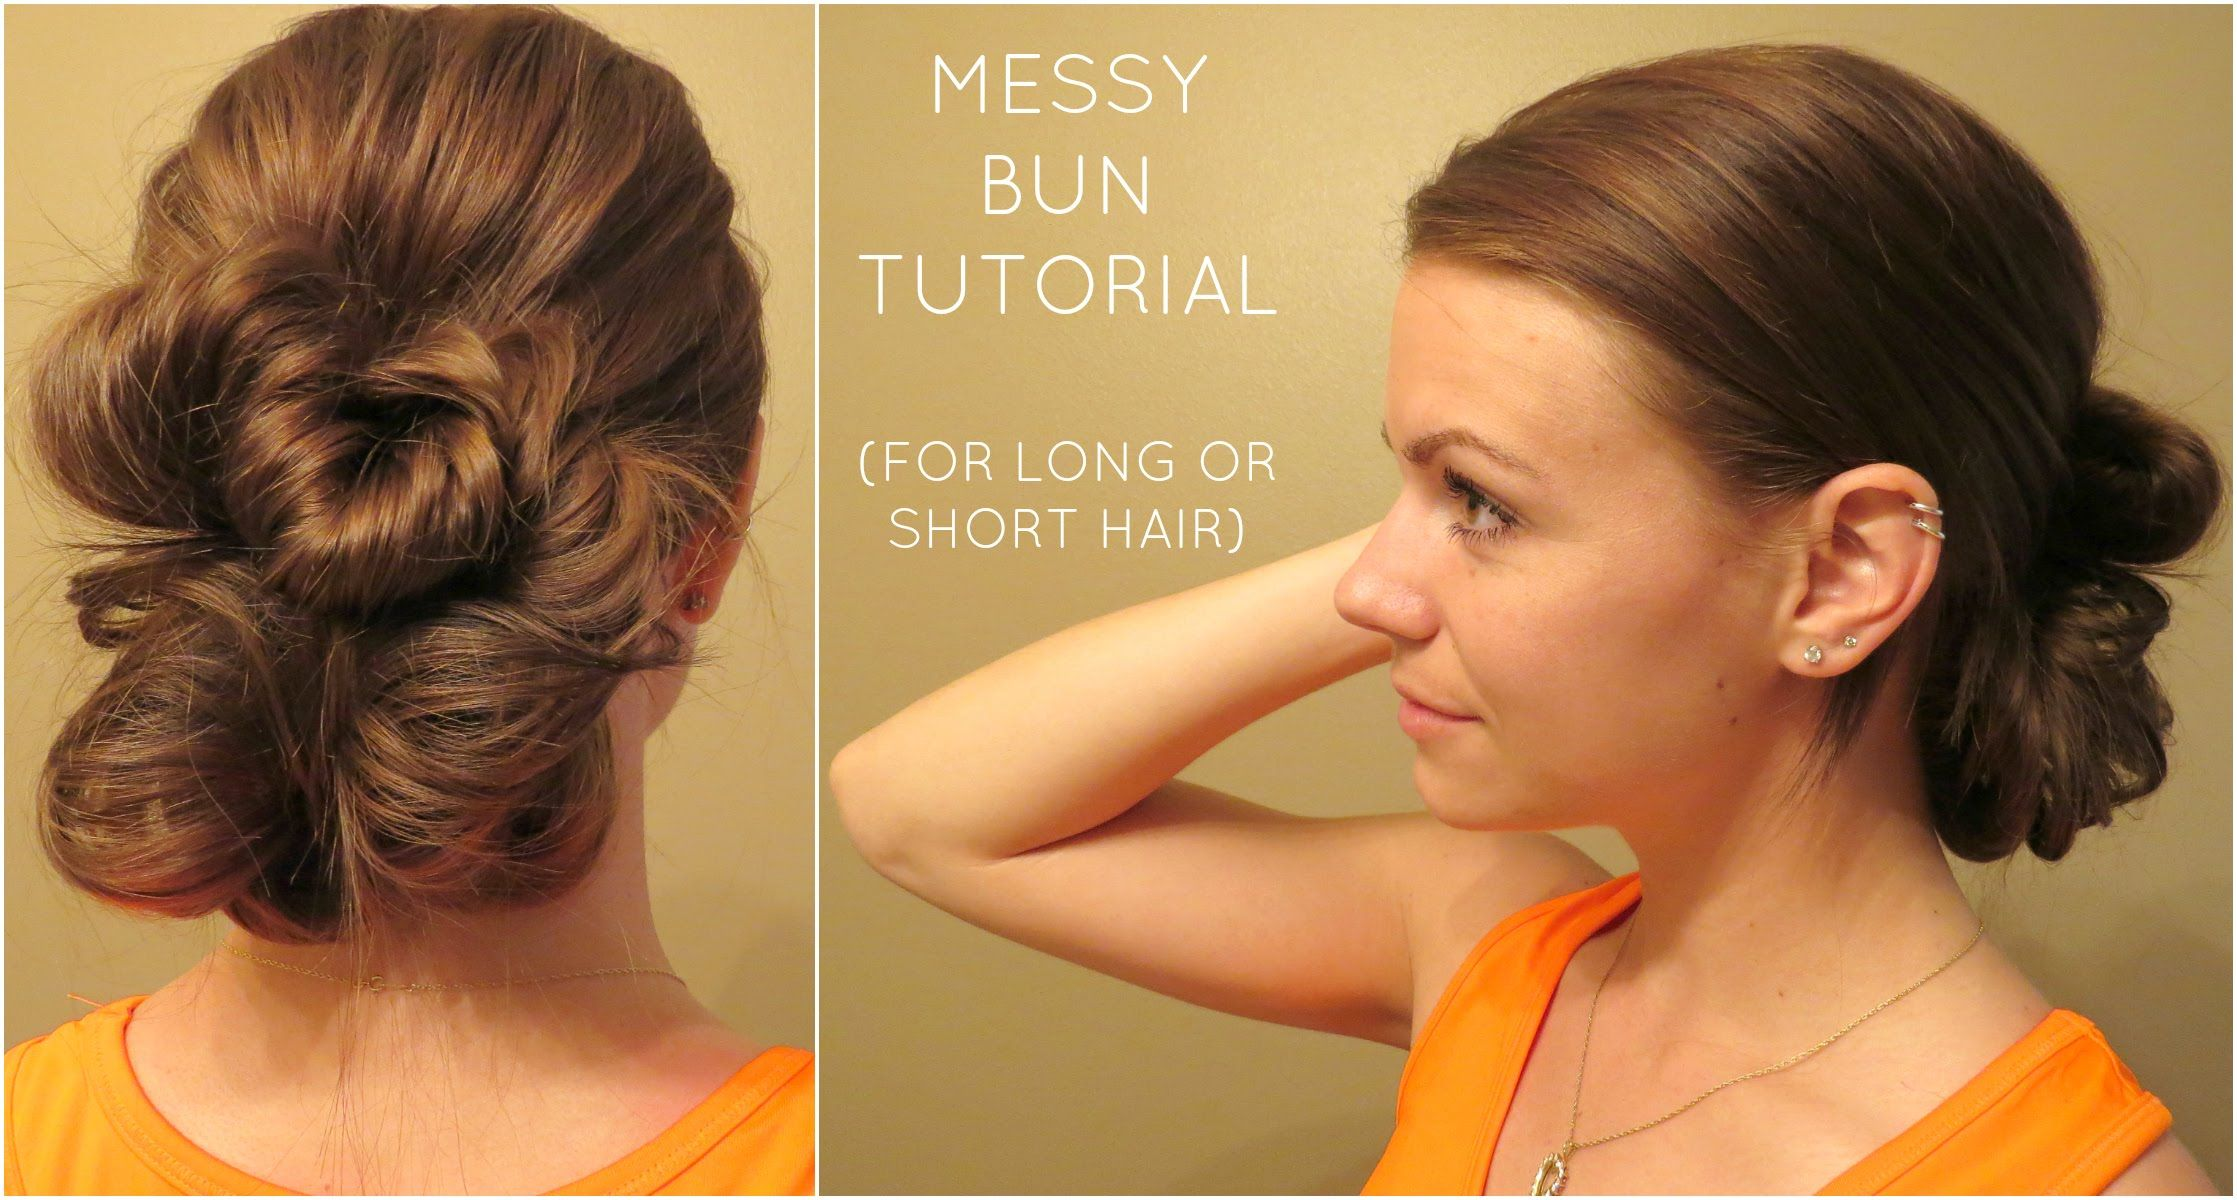 Messy Bun Tutorial for Long or Short Hair